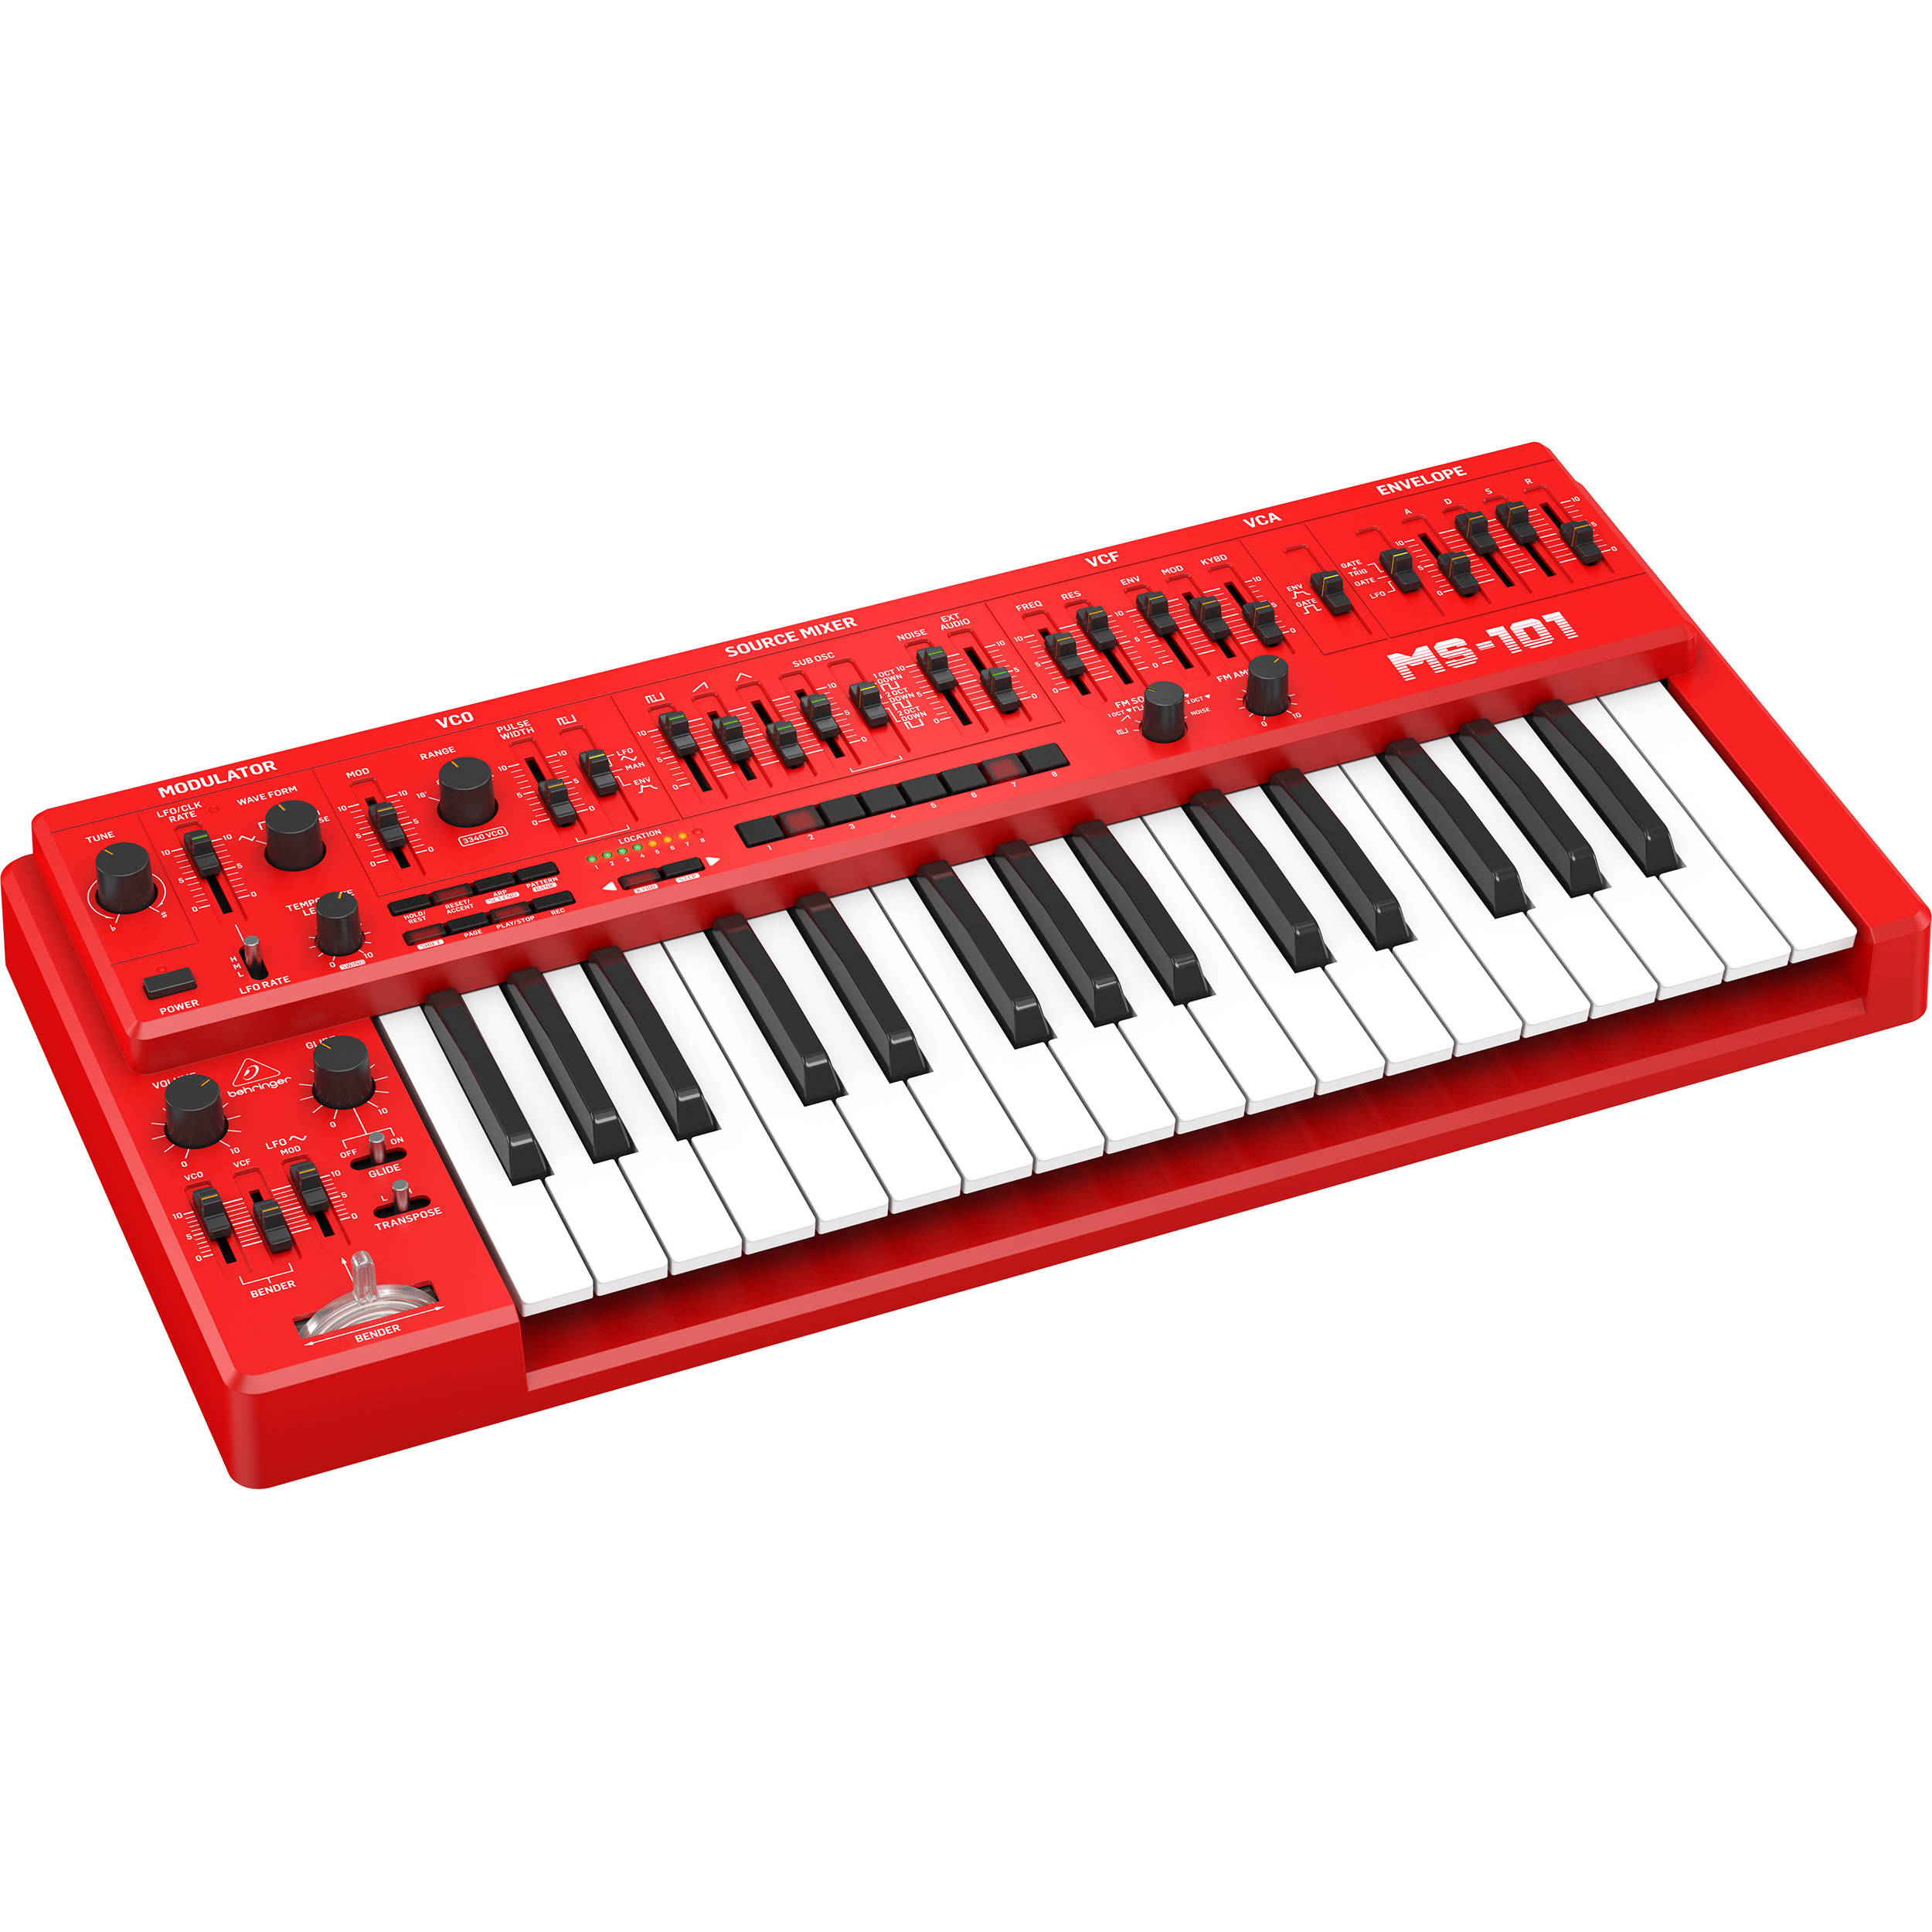 Behringer MS-101 Analog Synthesizer with Live Performance Kit (Red)